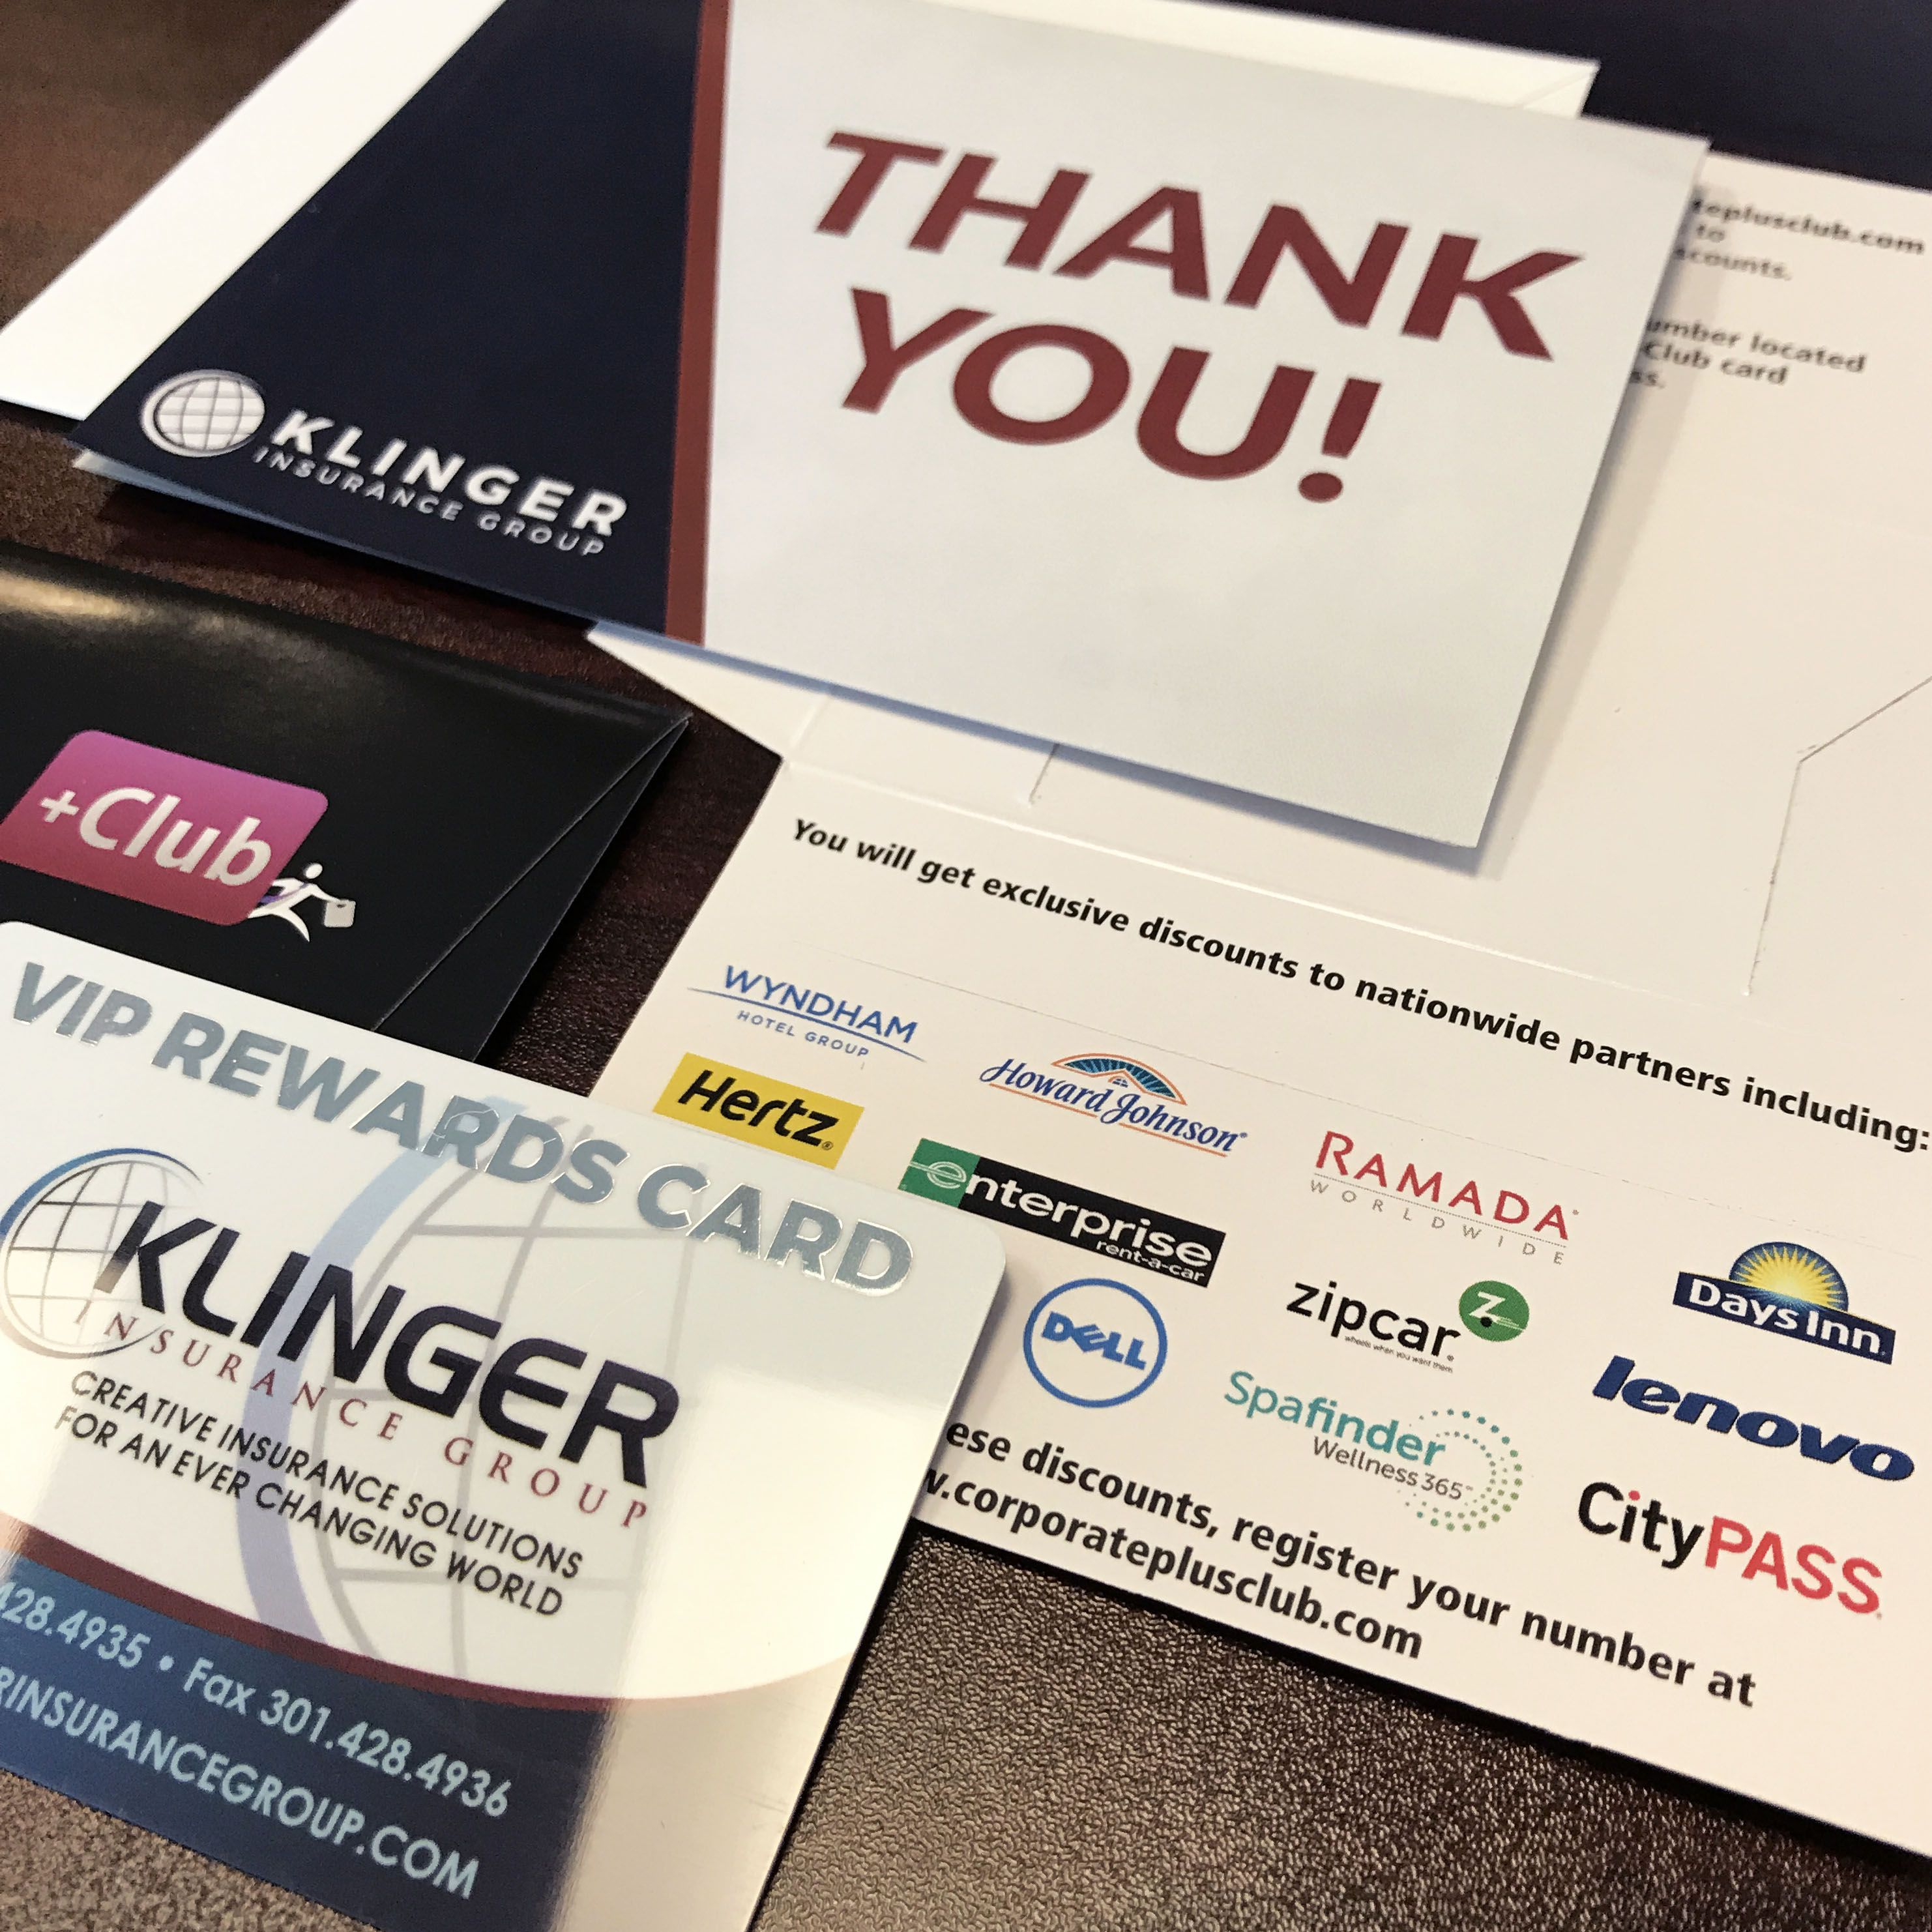 Coming soon to your mailbox! Klinger Insurance Group is